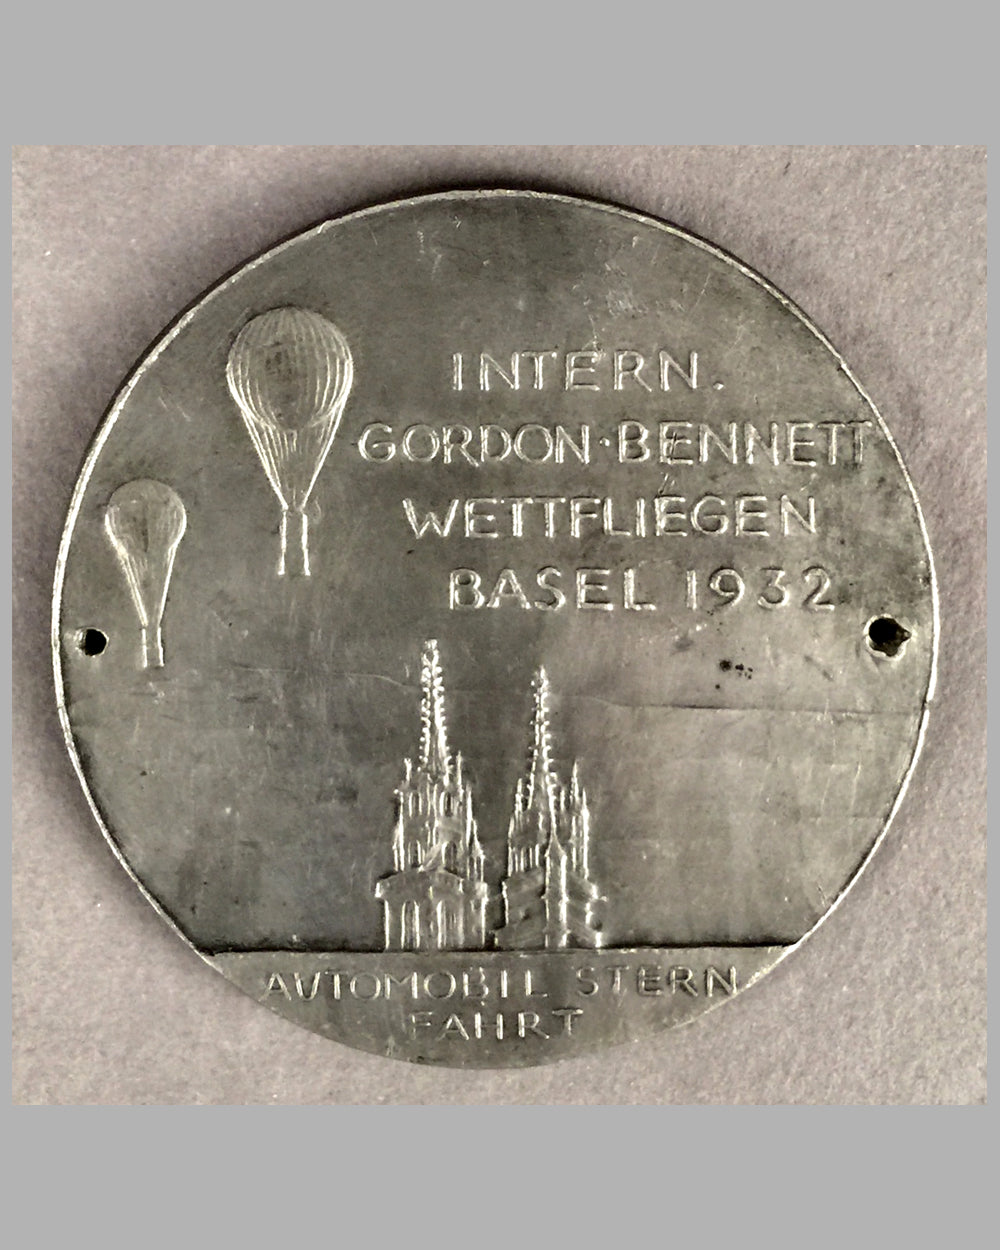 1932 International Gordon Bennett balloon race in Basel Switzerland pewter badge